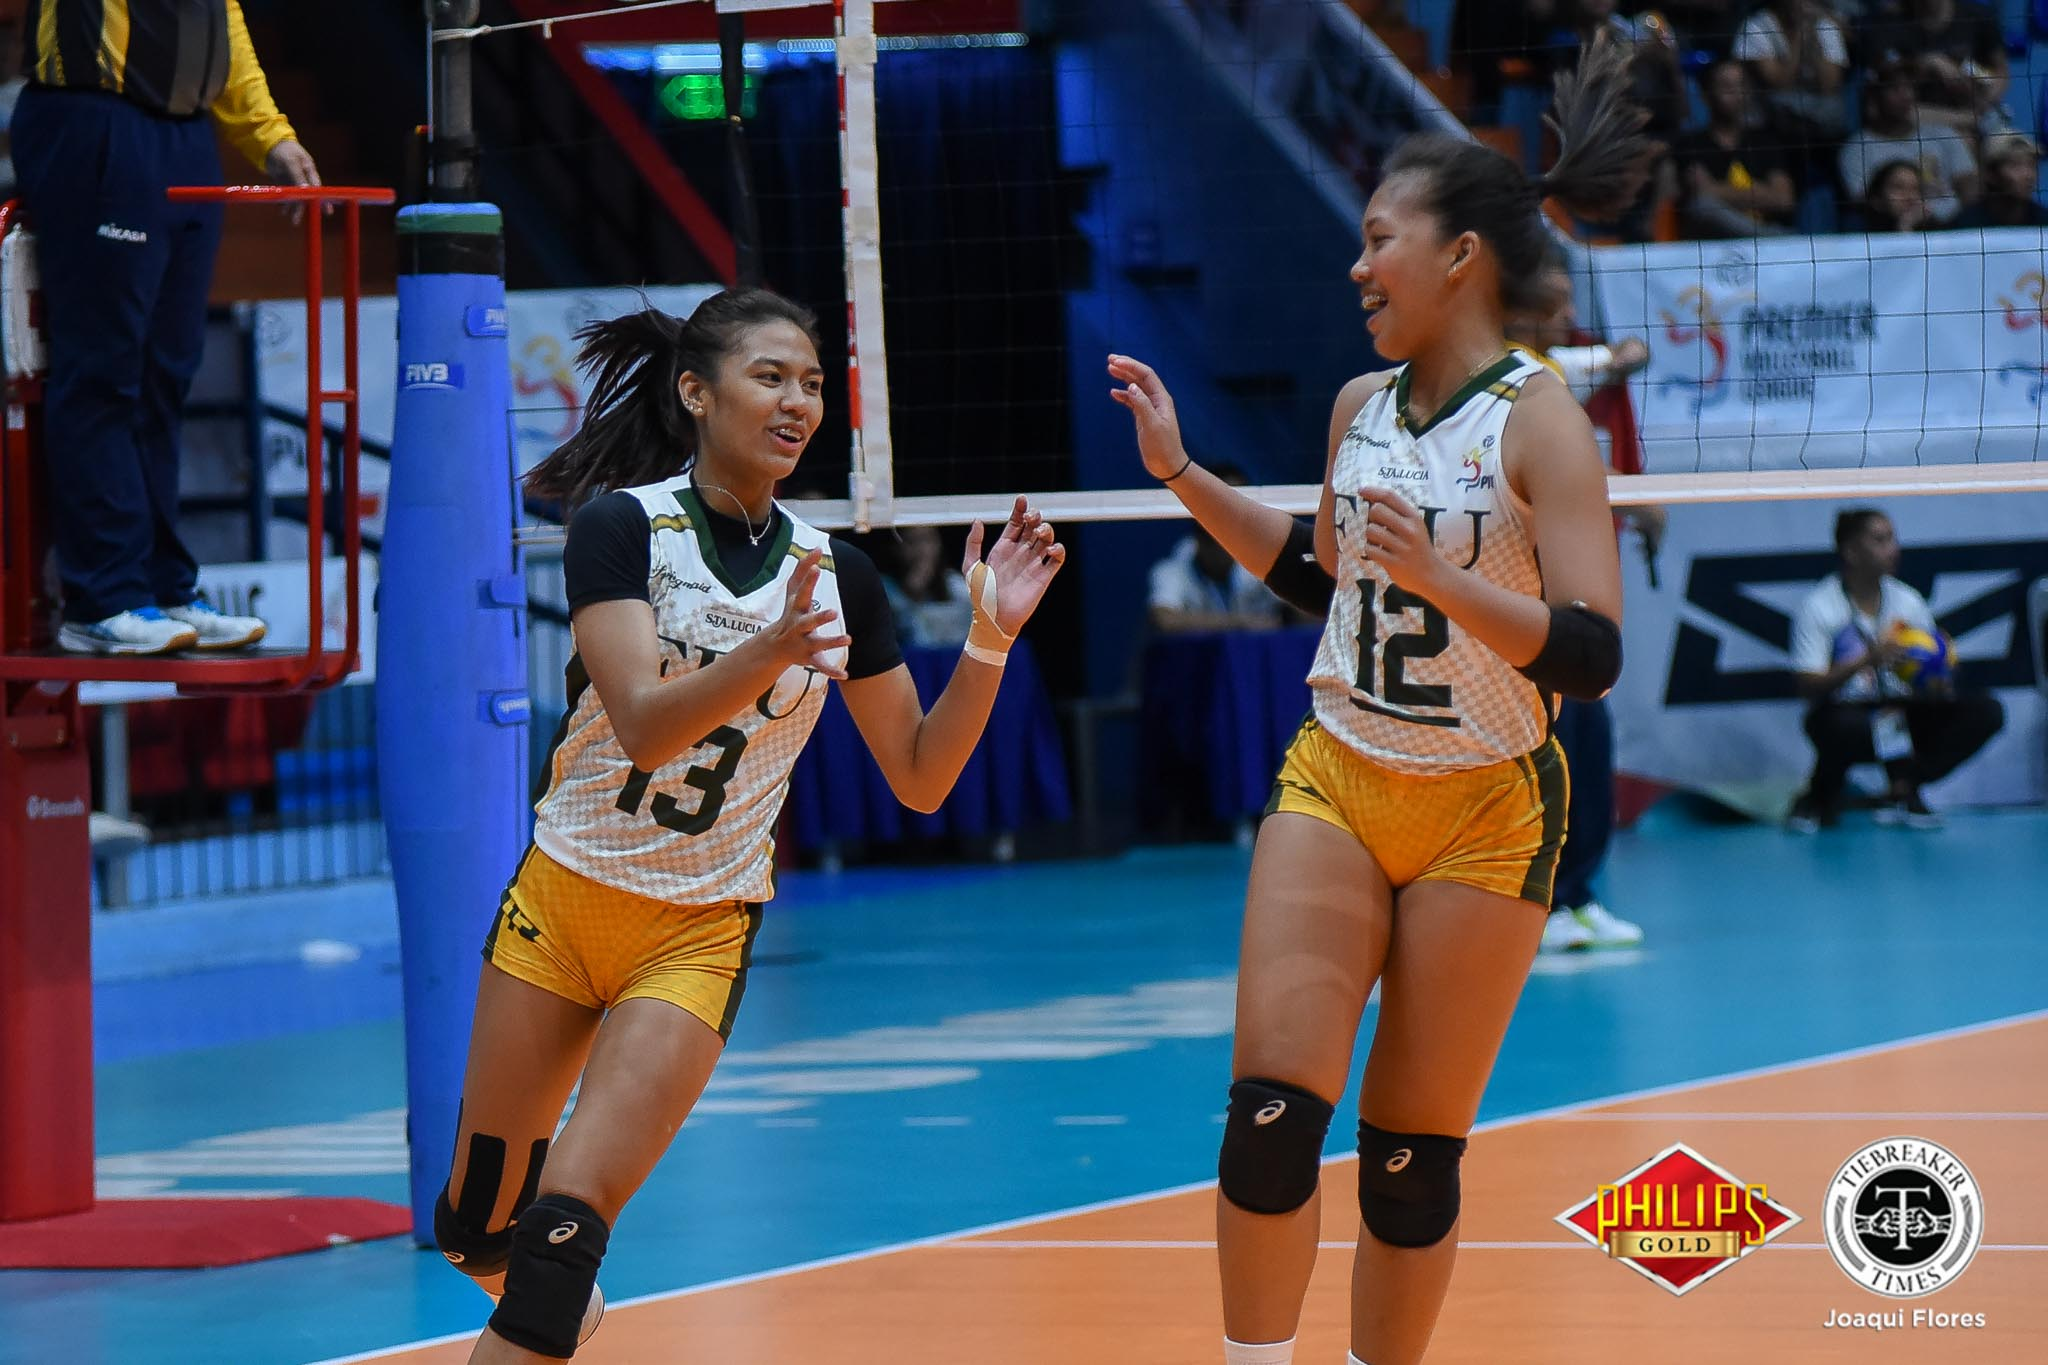 Tiebreaker Times Five-set FEU escapes tough Perpetual FEU News PVL UPHSD Volleyball  Perpetual Women's Volleyball Michael Carino Kyle Negrito Jeanette Villareal George Pascua FEU Women's Volleyball Cindy Imbo Celine Domingo Buding Duremdes 2018 PVL Women's Collegiate Conference 2018 PVL Season